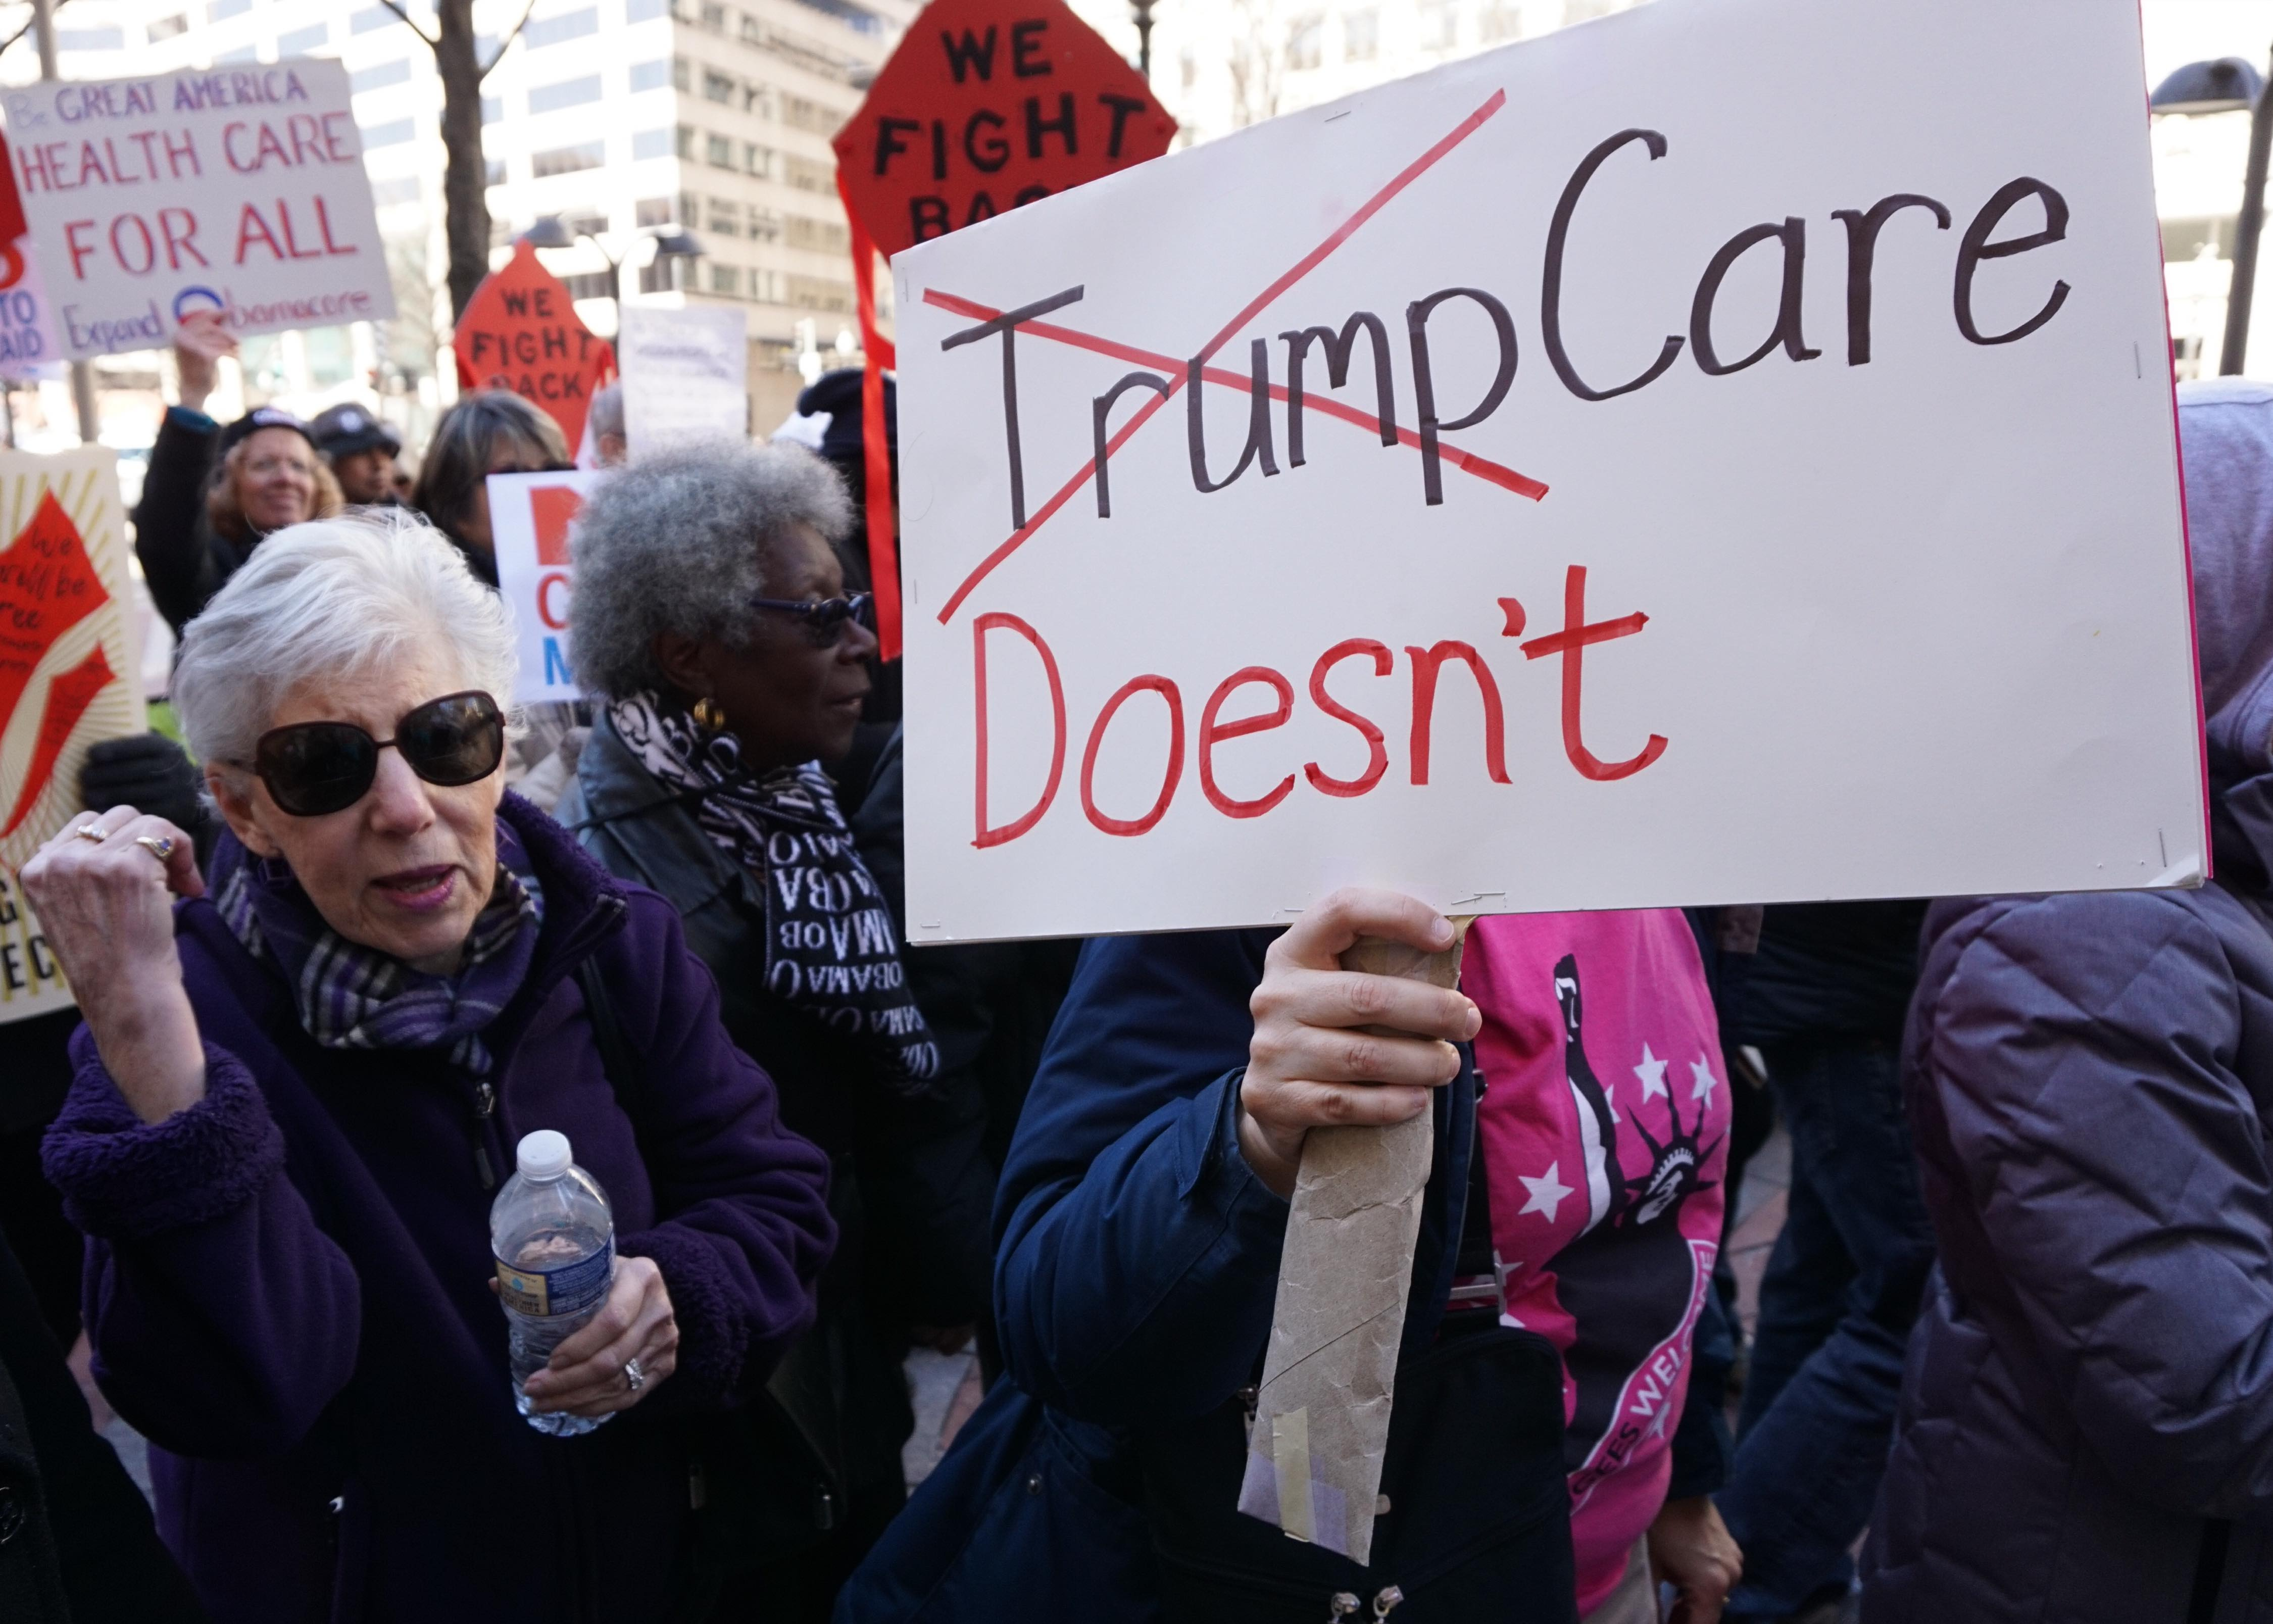 Supporters of the Affordable Care Act demonstrate in Washington, D.C. on March 23, 2017. (Mandel Ngan/AFP/Getty Images)